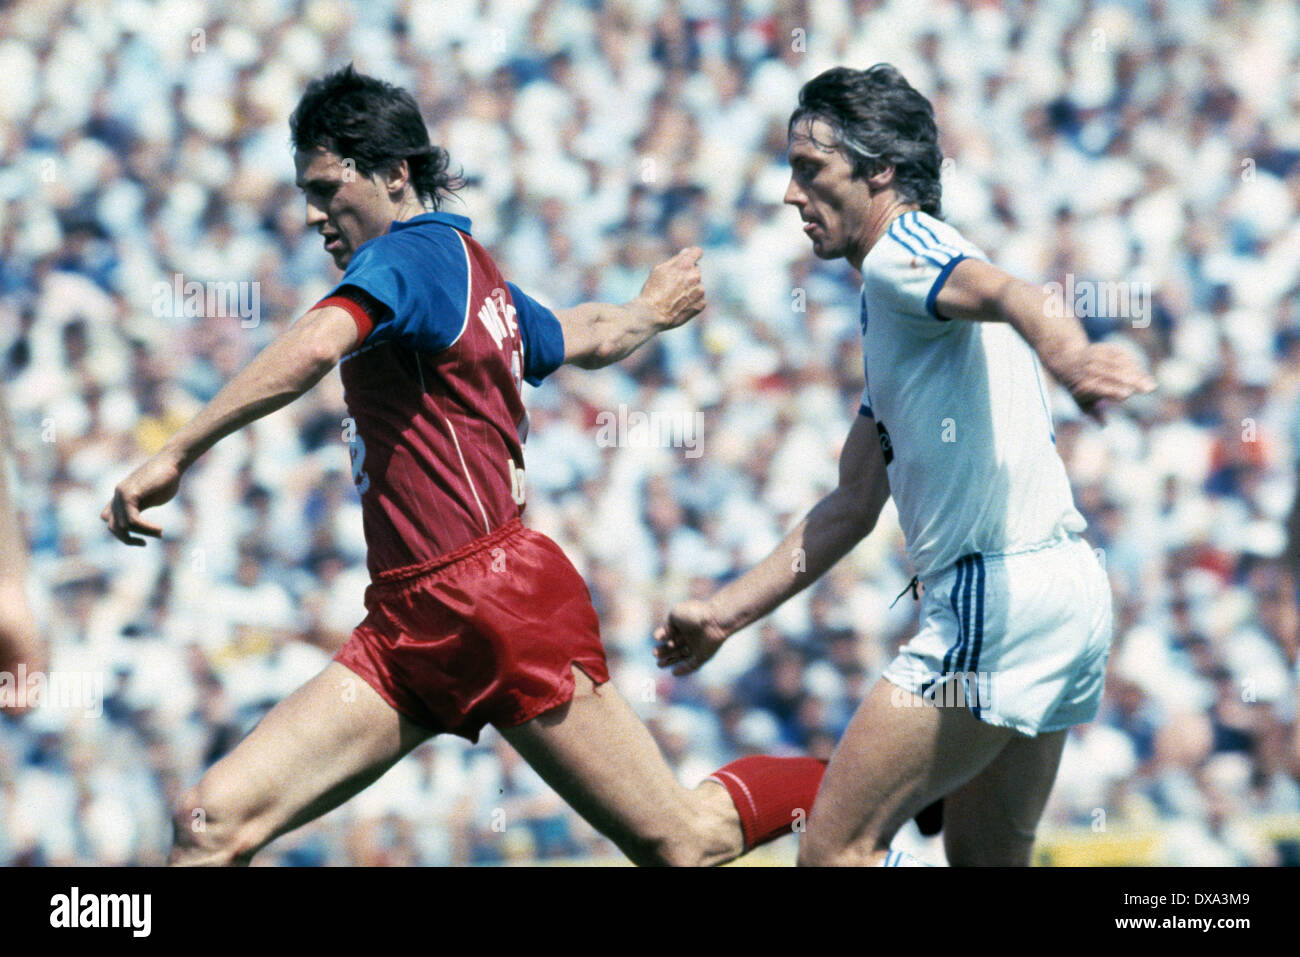 football, 1. Bundesliga, 2. Bundesliga, 1982/1983, relegation match to Bundesliga 1983/1984, return leg, Park Stadium, FC Schalke 04 versus FC Bayer 05 Uerdingen 1:1, scene of the match, Franz Raschid (Bayer) left and Theo Buecker (S04) - Stock Image